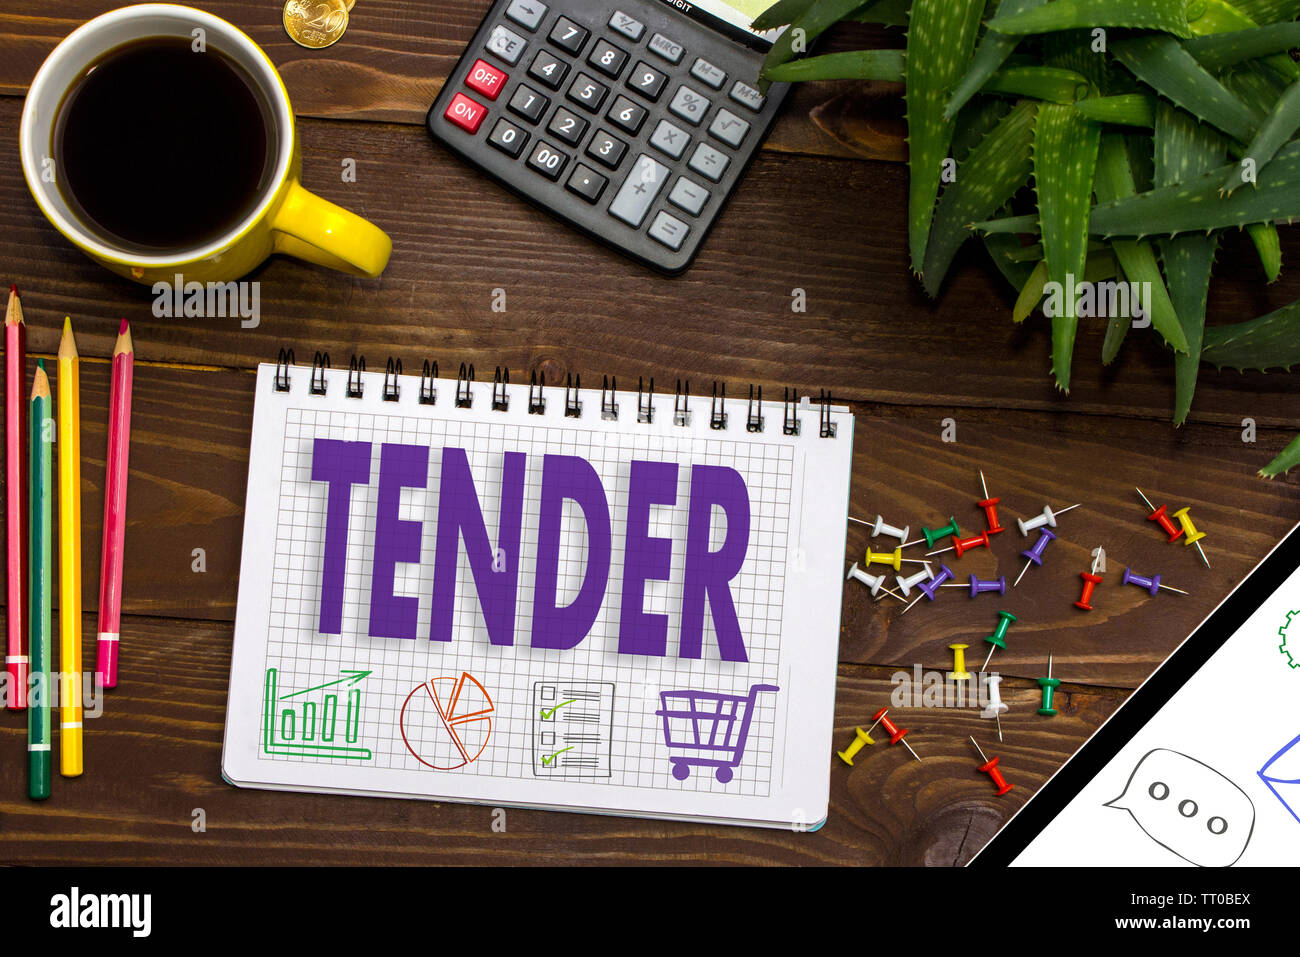 TENDER on the touch screen - Stock Image